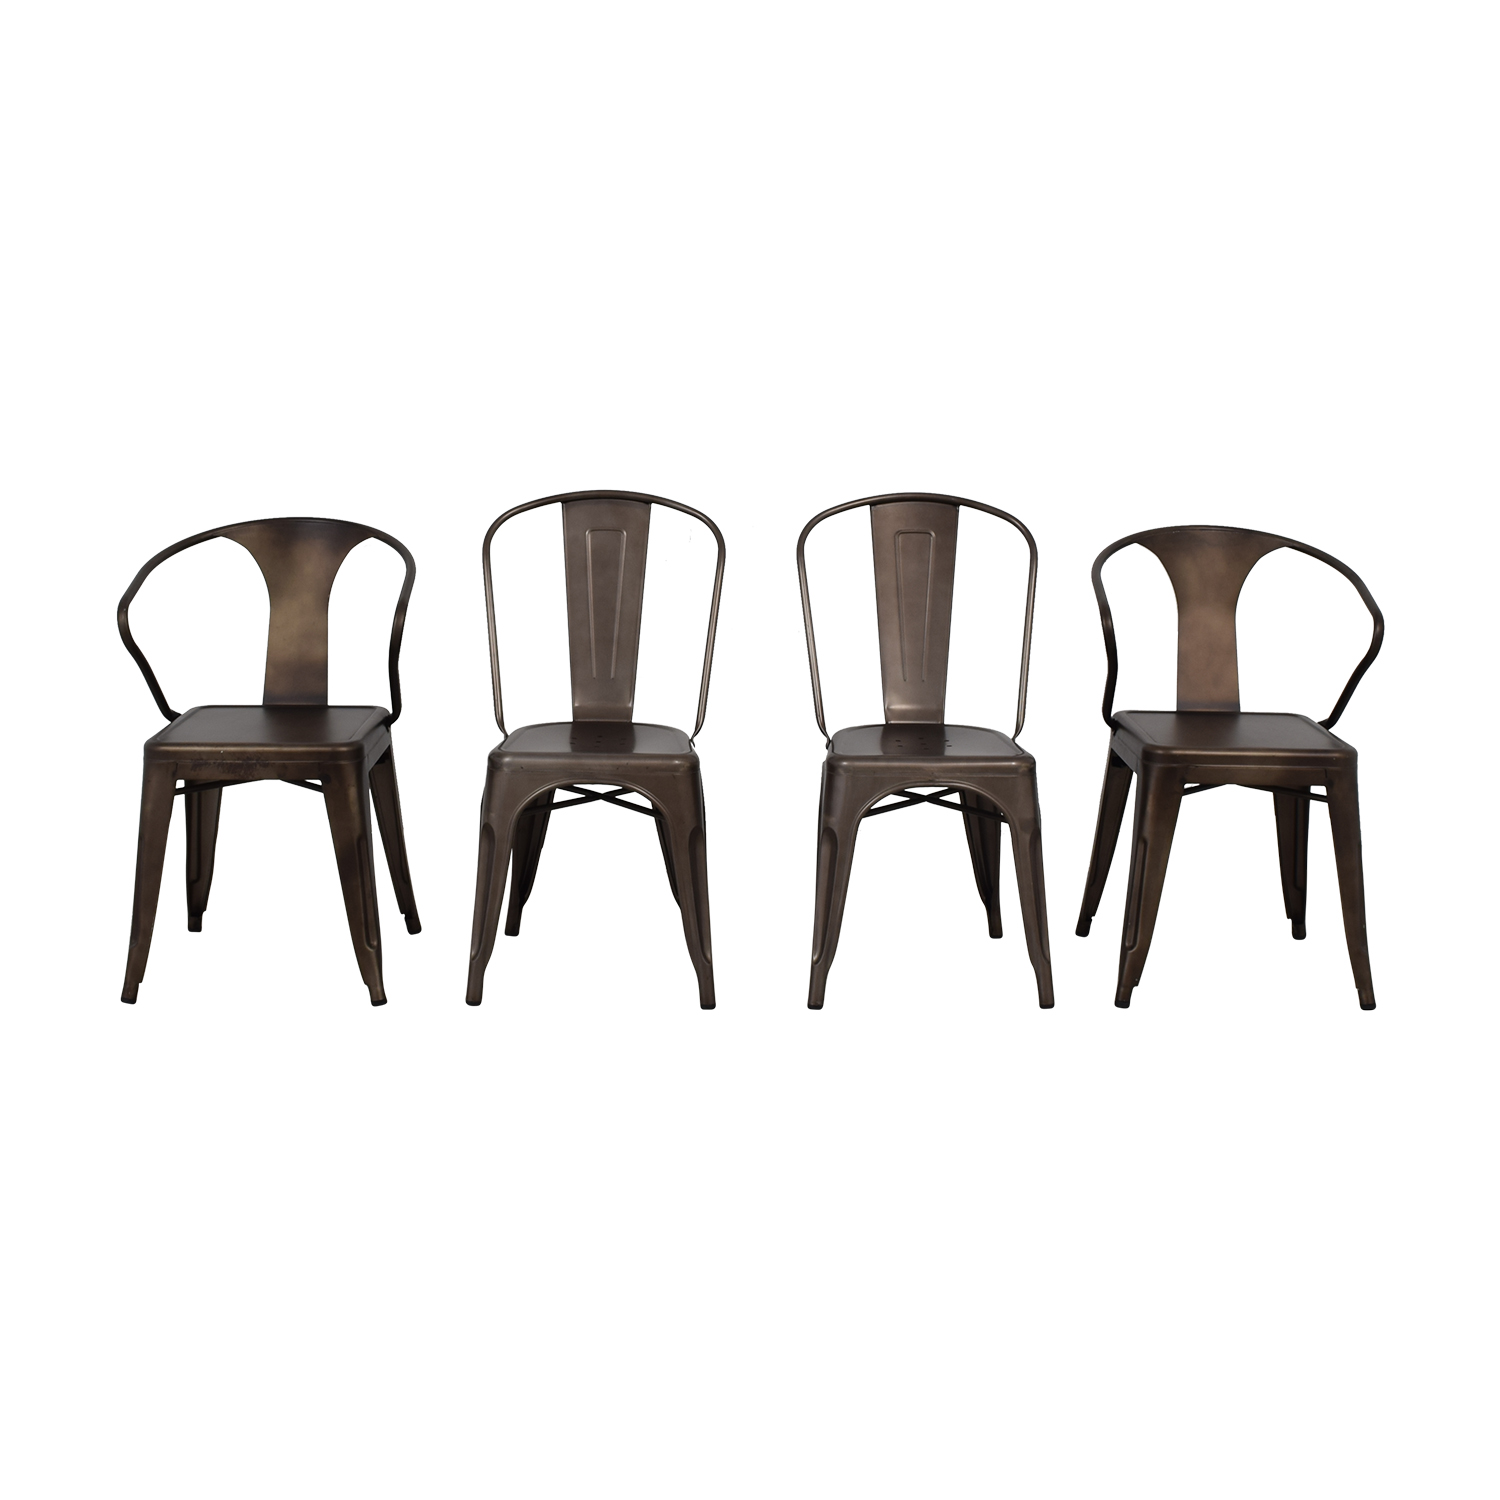 68 Off Tabouret Bronze Metal Bistro Chairs Chairs